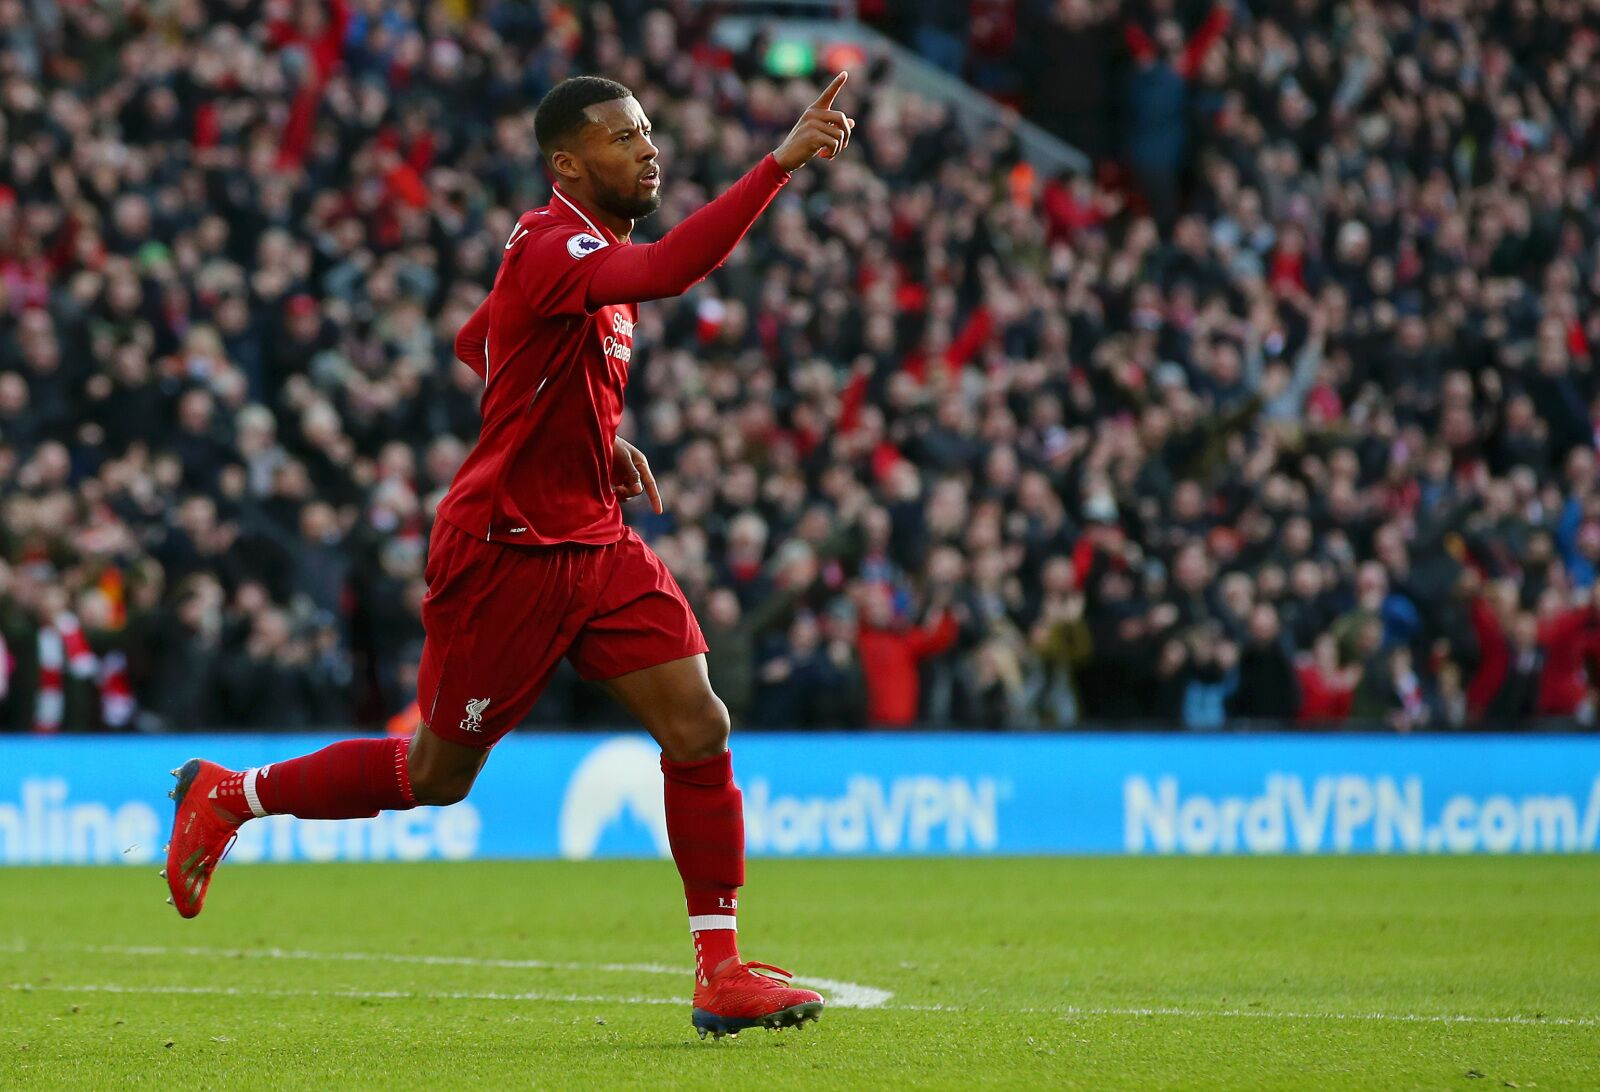 Mariano Trujillo: Bayern have no chance against rapid Liverpool